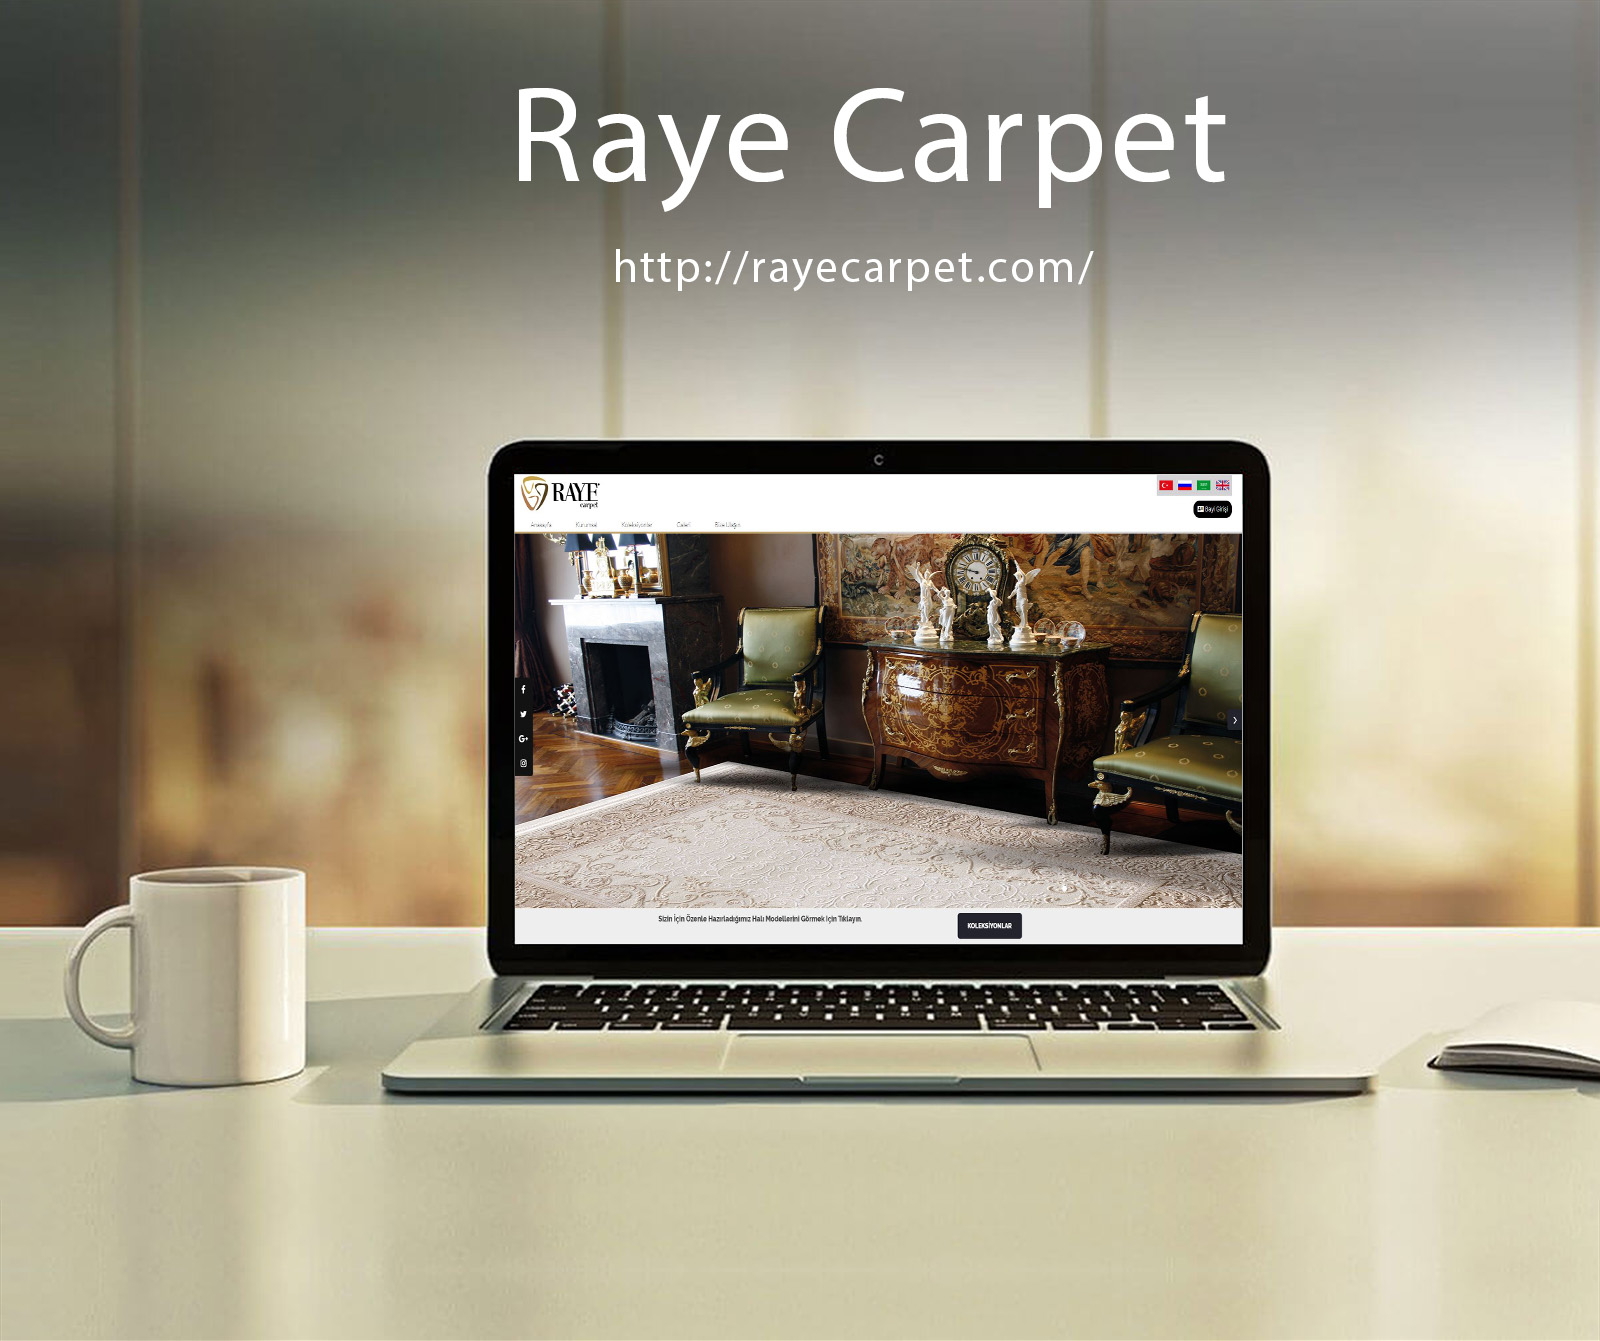 Raye Carpet